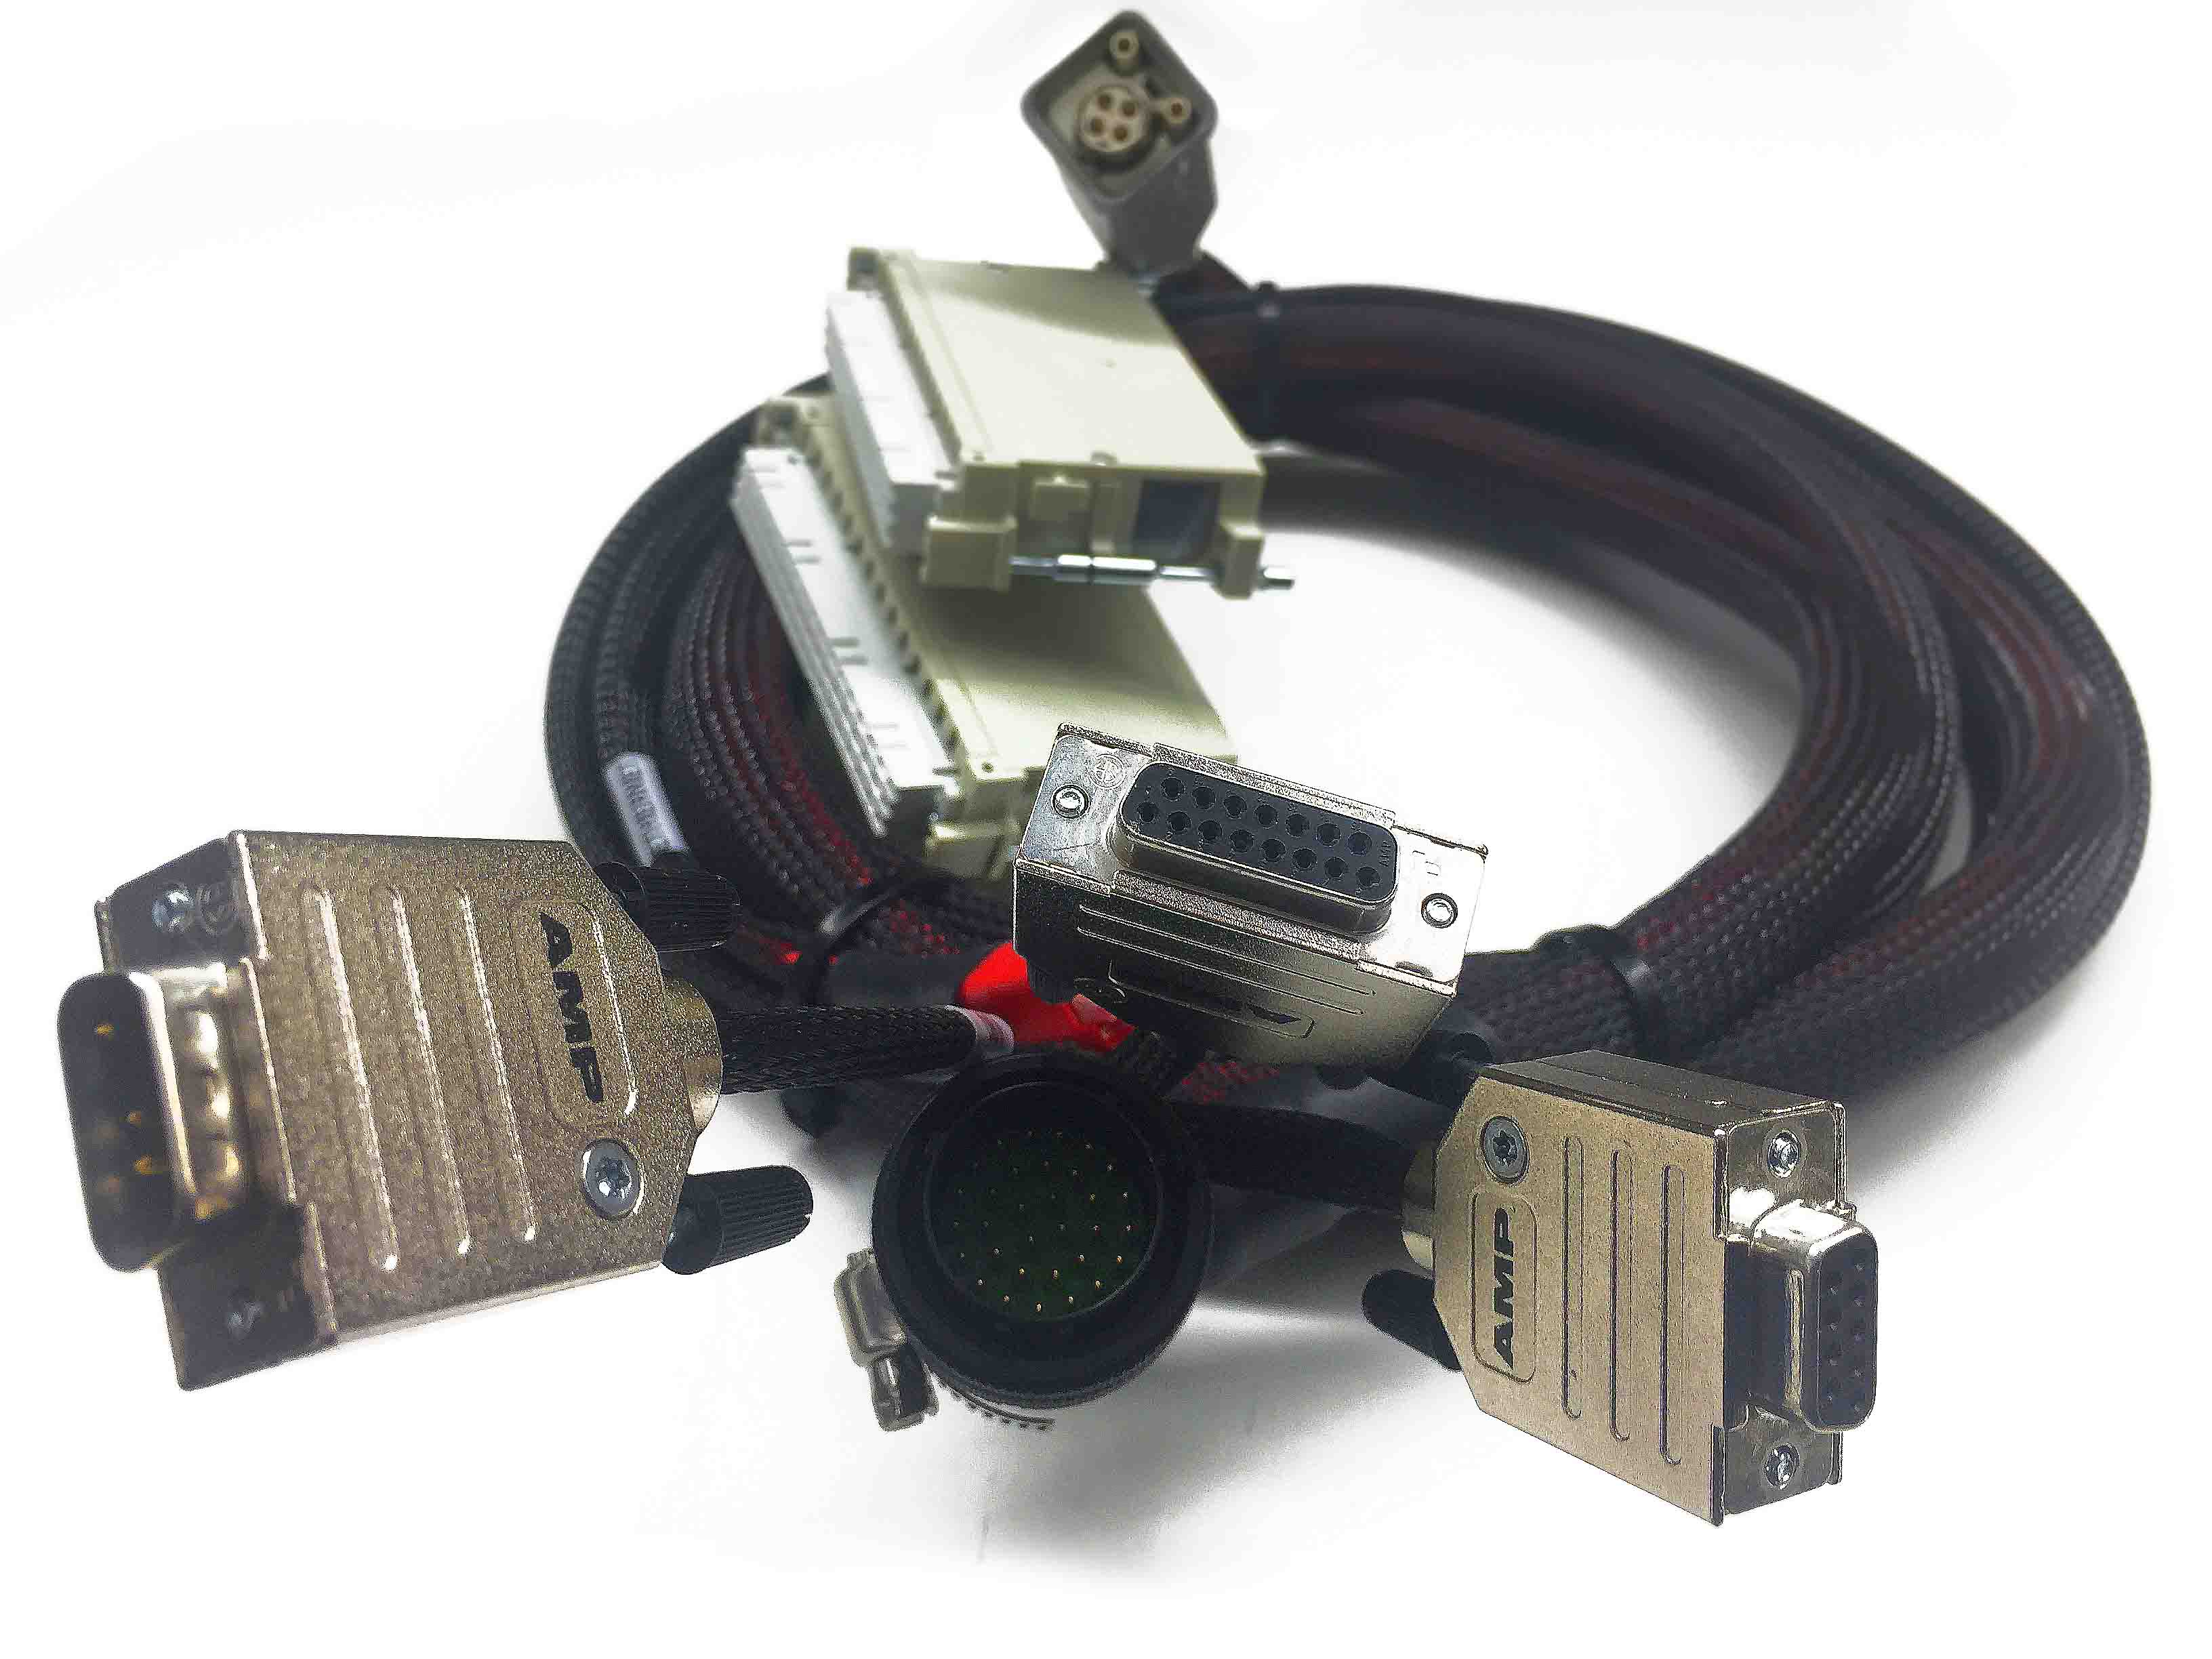 Cable Assemblies Harnesses Panels Looms Manufacturer Ukgem Tv Wiring Solutions Uk Gem Cables Are Leading Manufacturers Of Bespoke Control Boxes Fibre Optic Products And